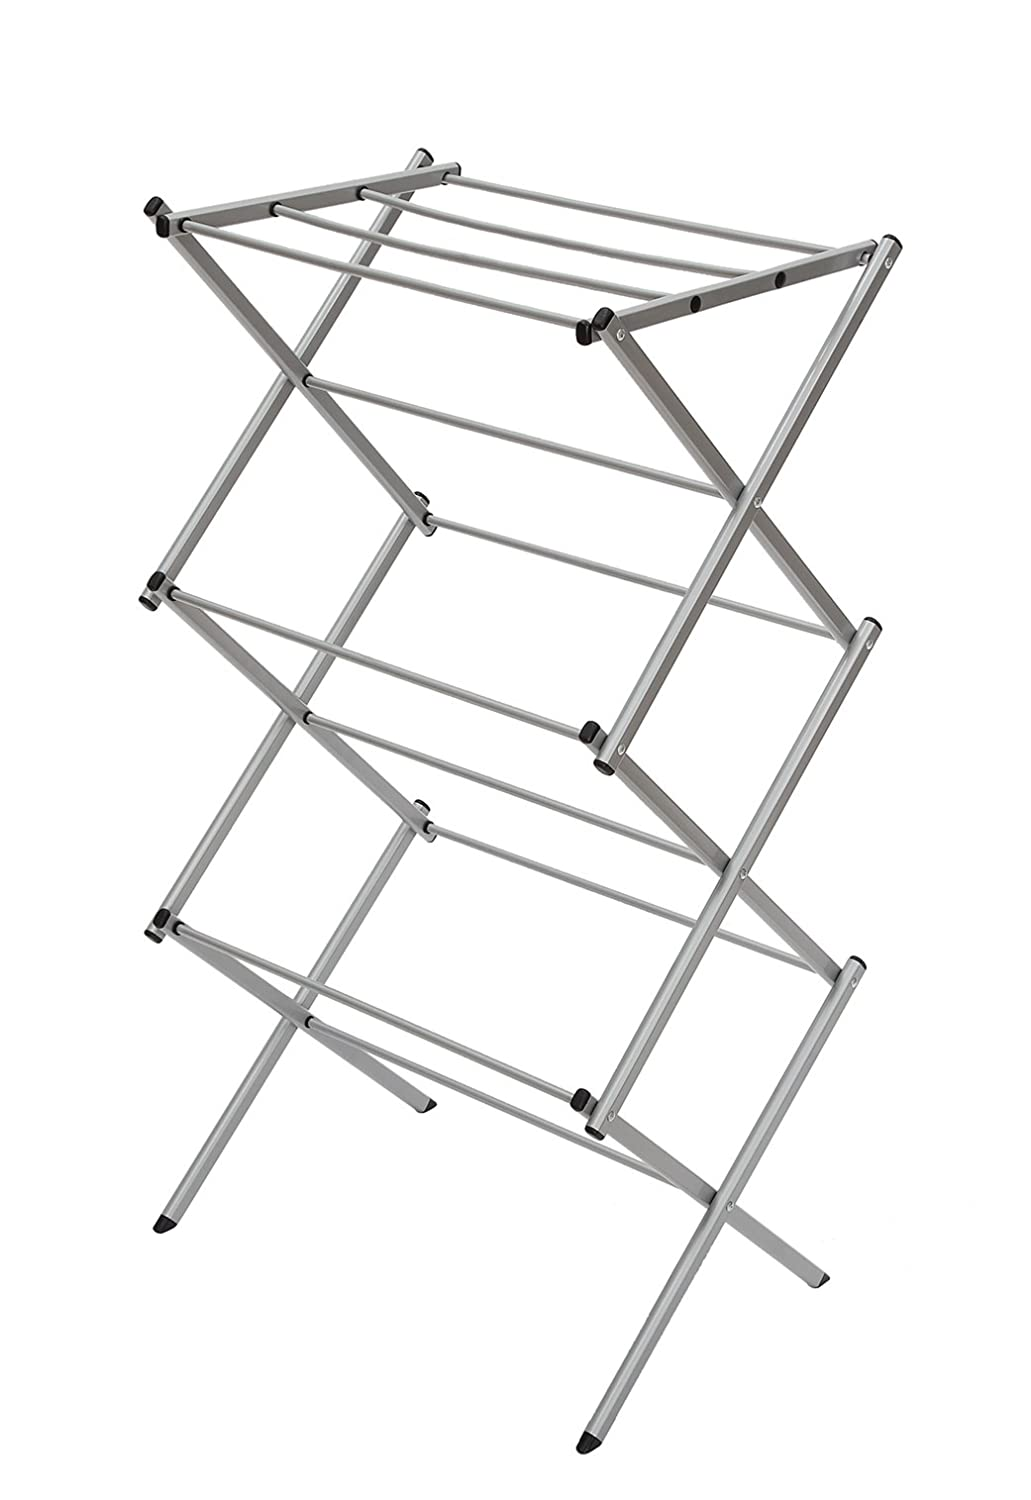 3 tier folding water resistant steel clothes drying rack. Black Bedroom Furniture Sets. Home Design Ideas